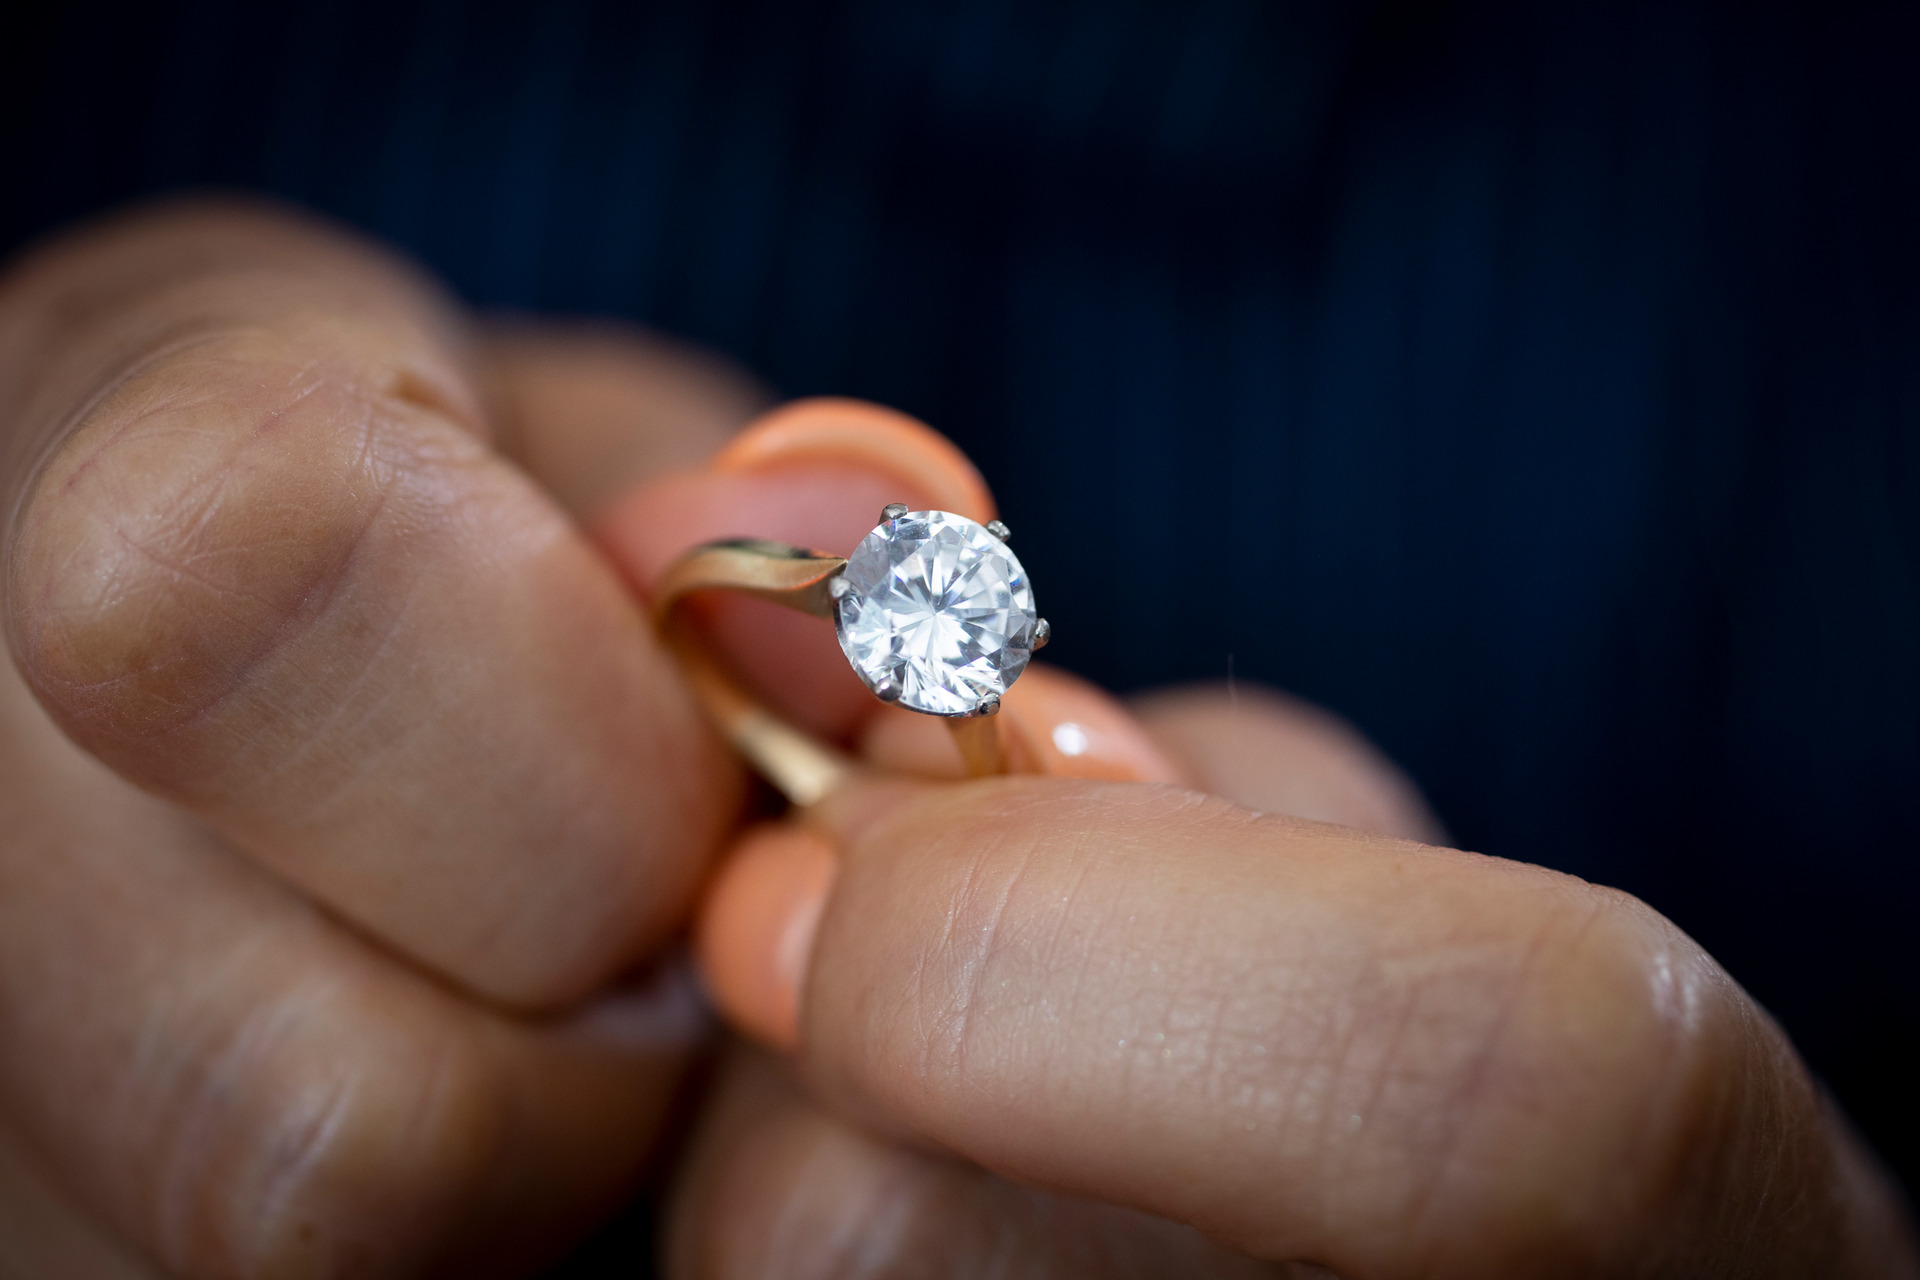 Mystery surrounds woman's $180,000 diamond ring swapped with $1000 stone